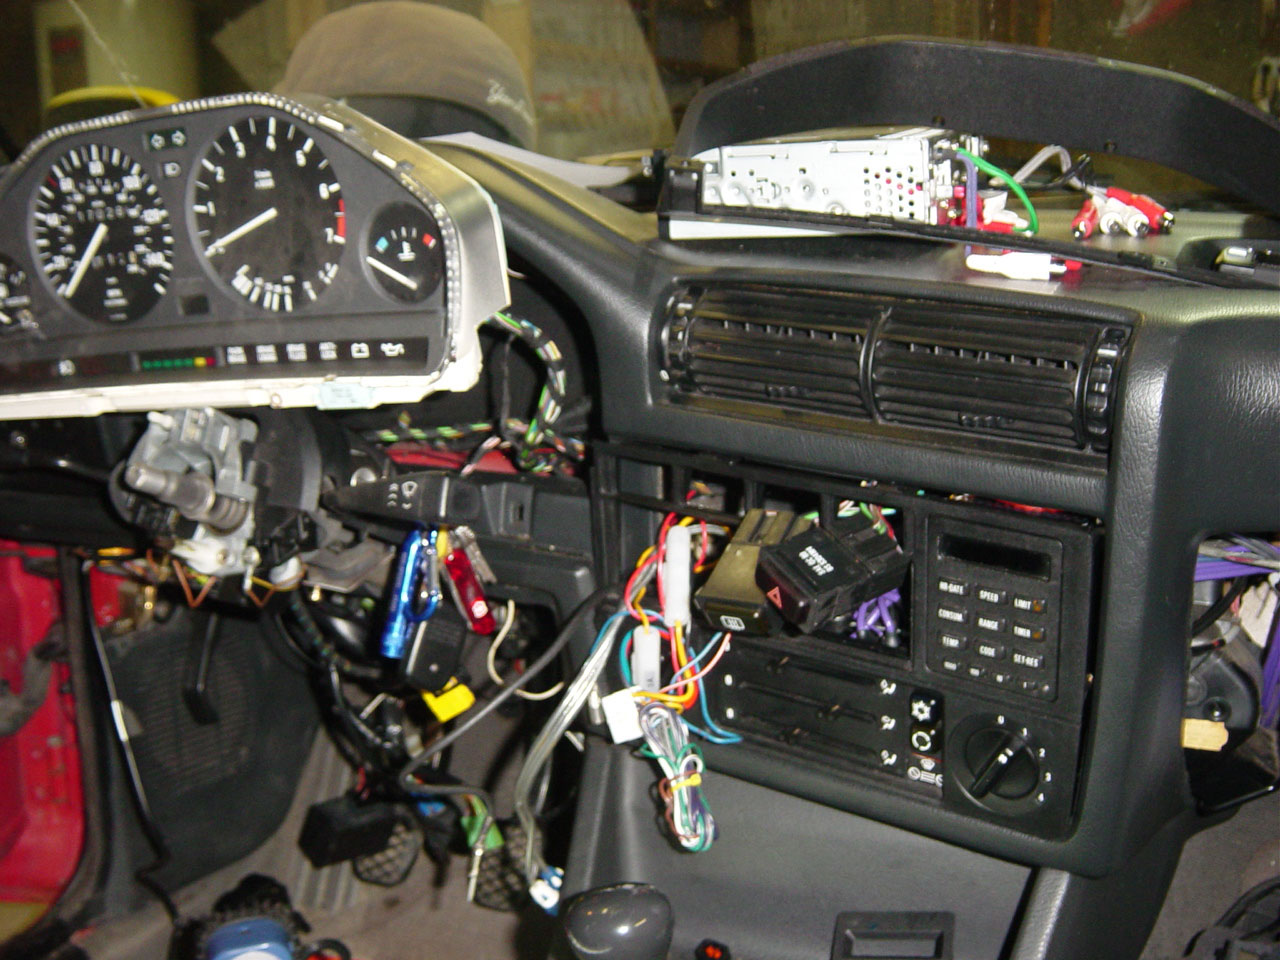 1991 BMW 318i E30 M42 On Board Computer OBC Retrofit by Michael